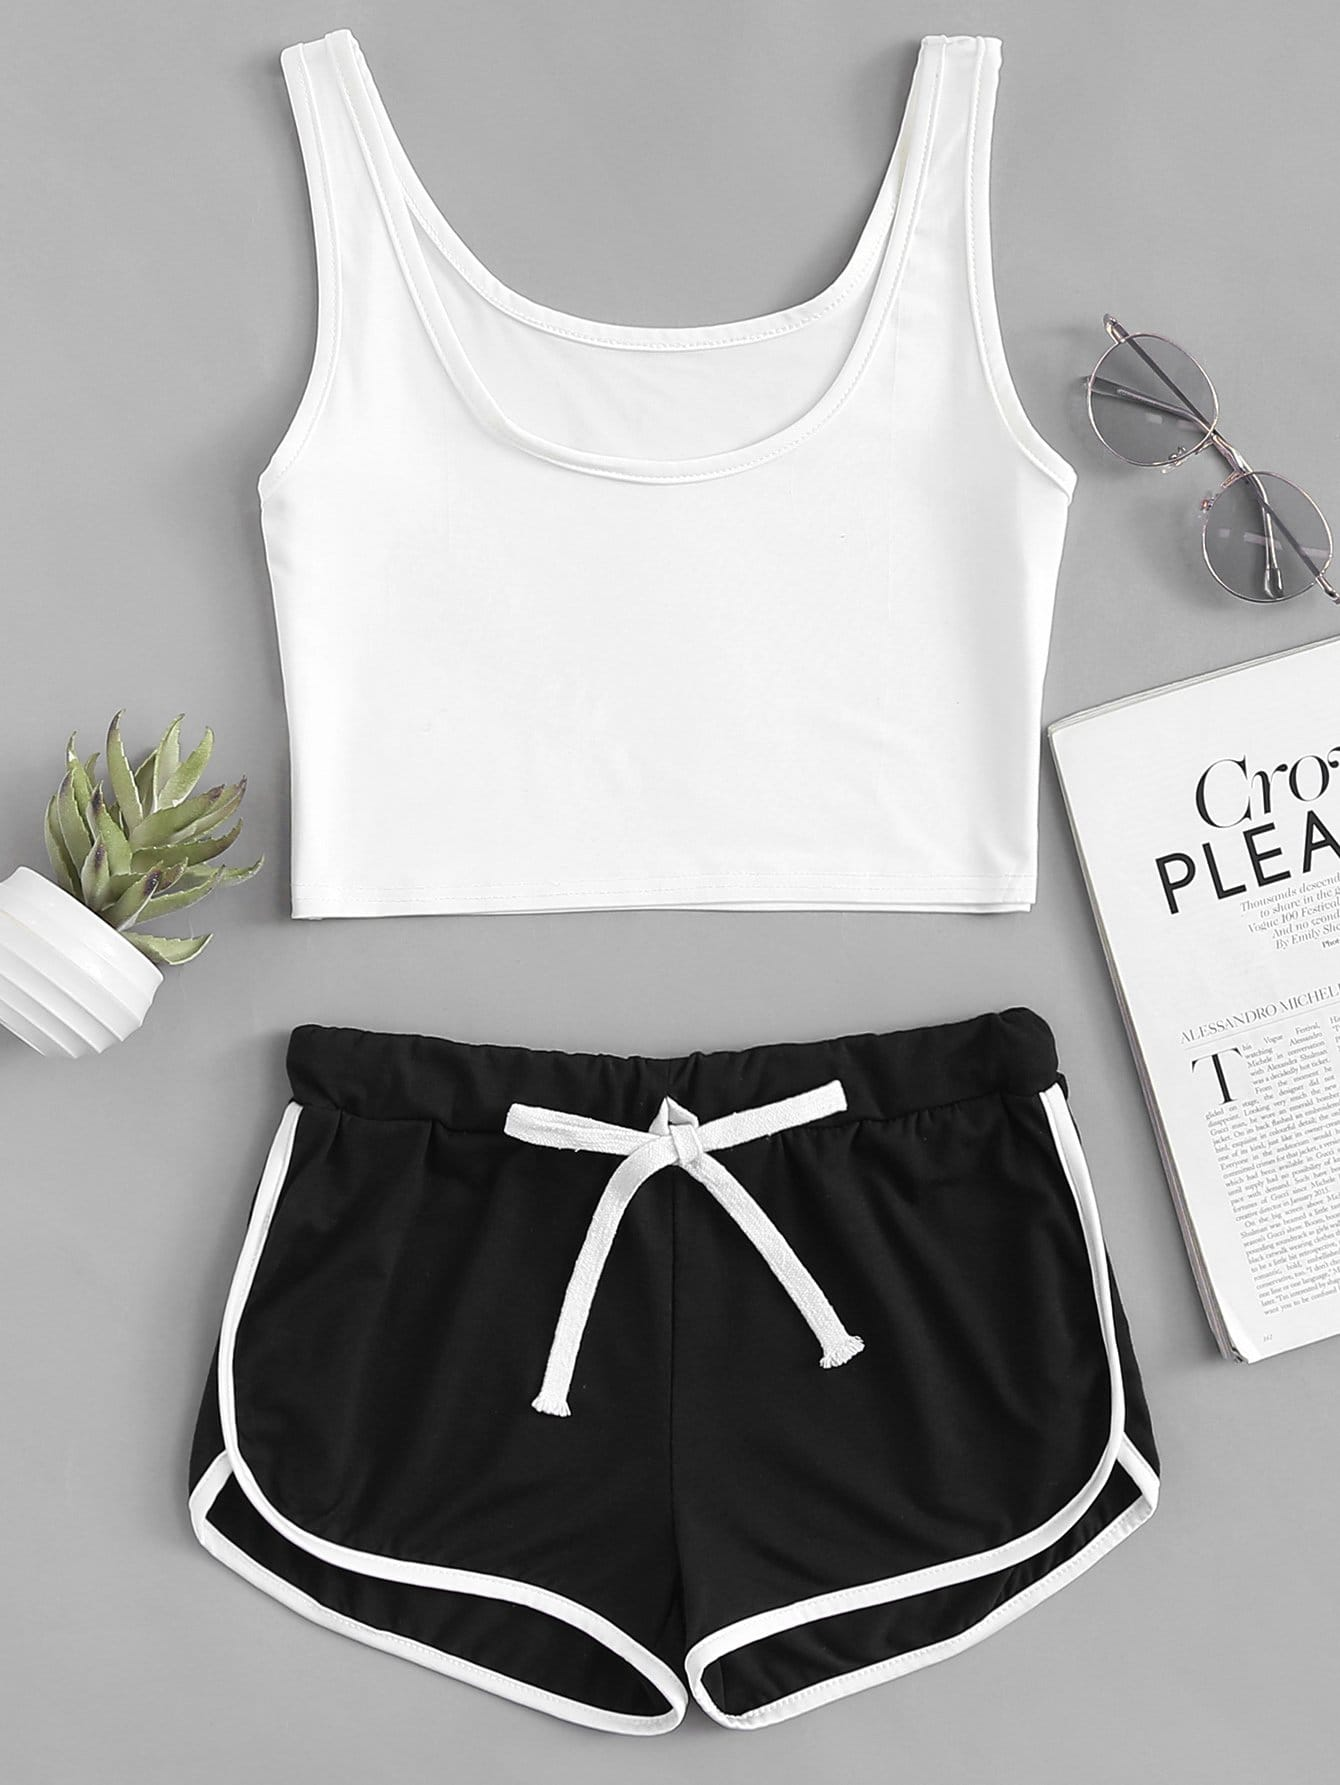 Scoop Neck Top With Drawstring Shorts sweatyrocks ringer crop cami top with drawstring shorts burgundy patchwork scoop neck sleeveless sexy women two pieces set